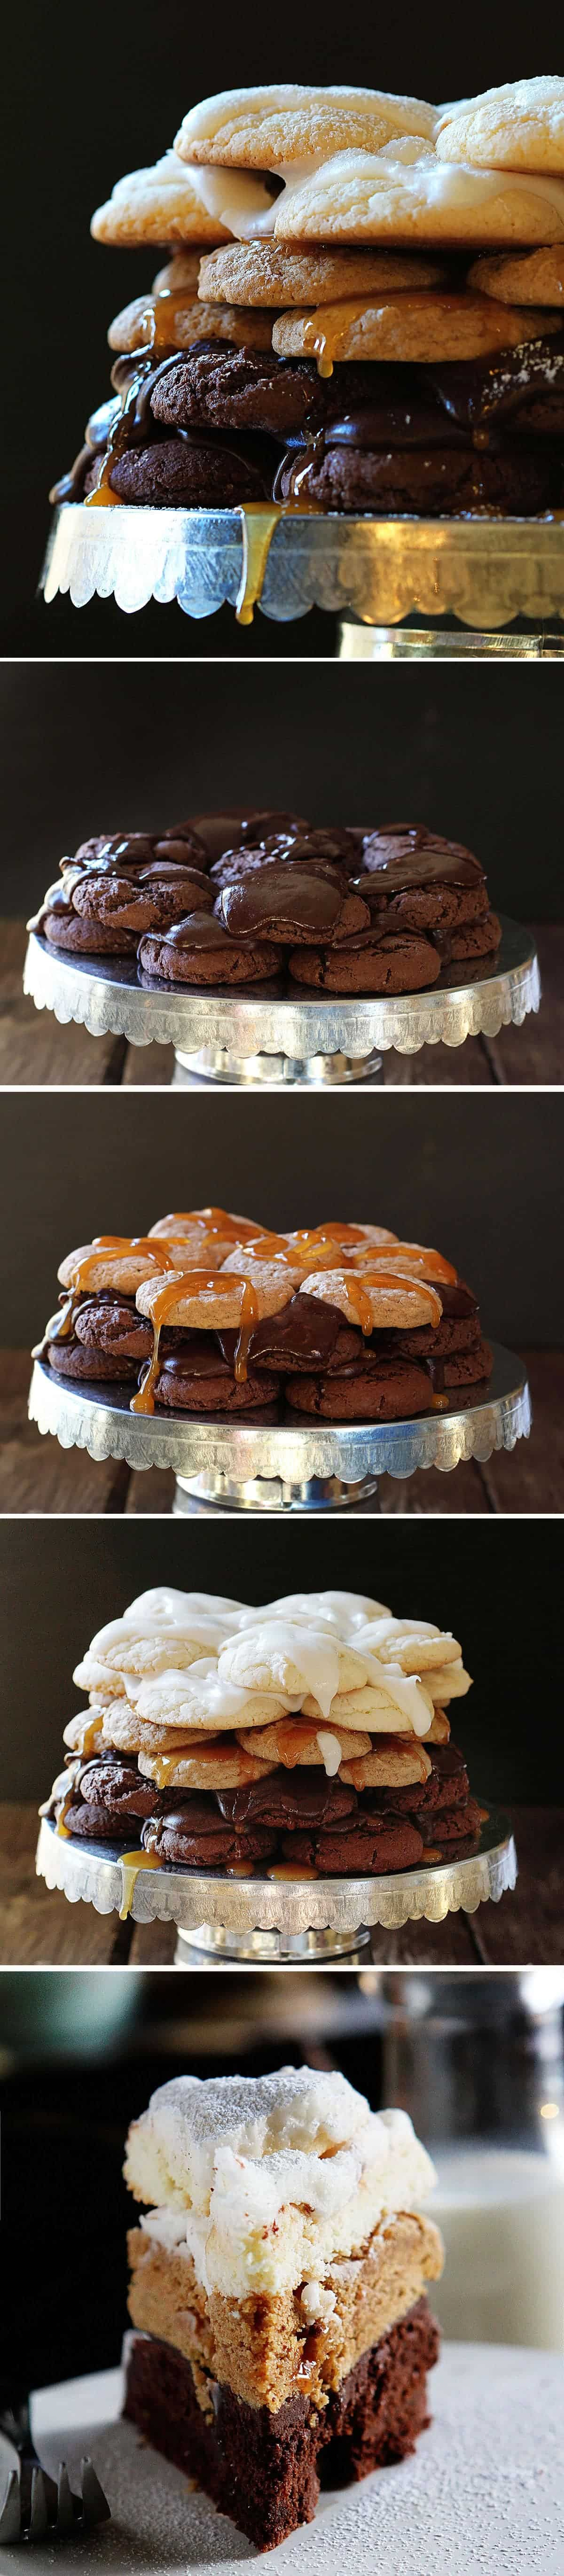 How to Make a Cookie Layer Cake!